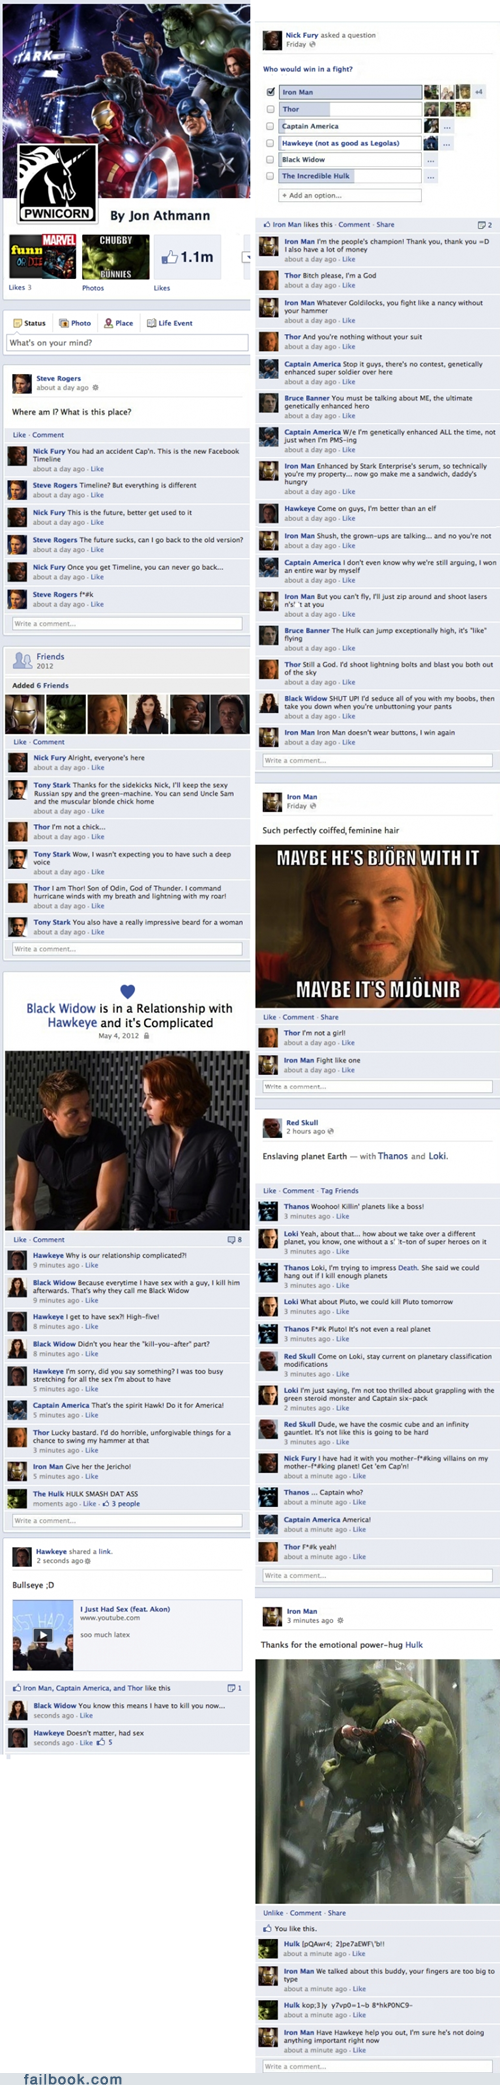 avengers failbook fanfic movies The Avengers - 6157956608